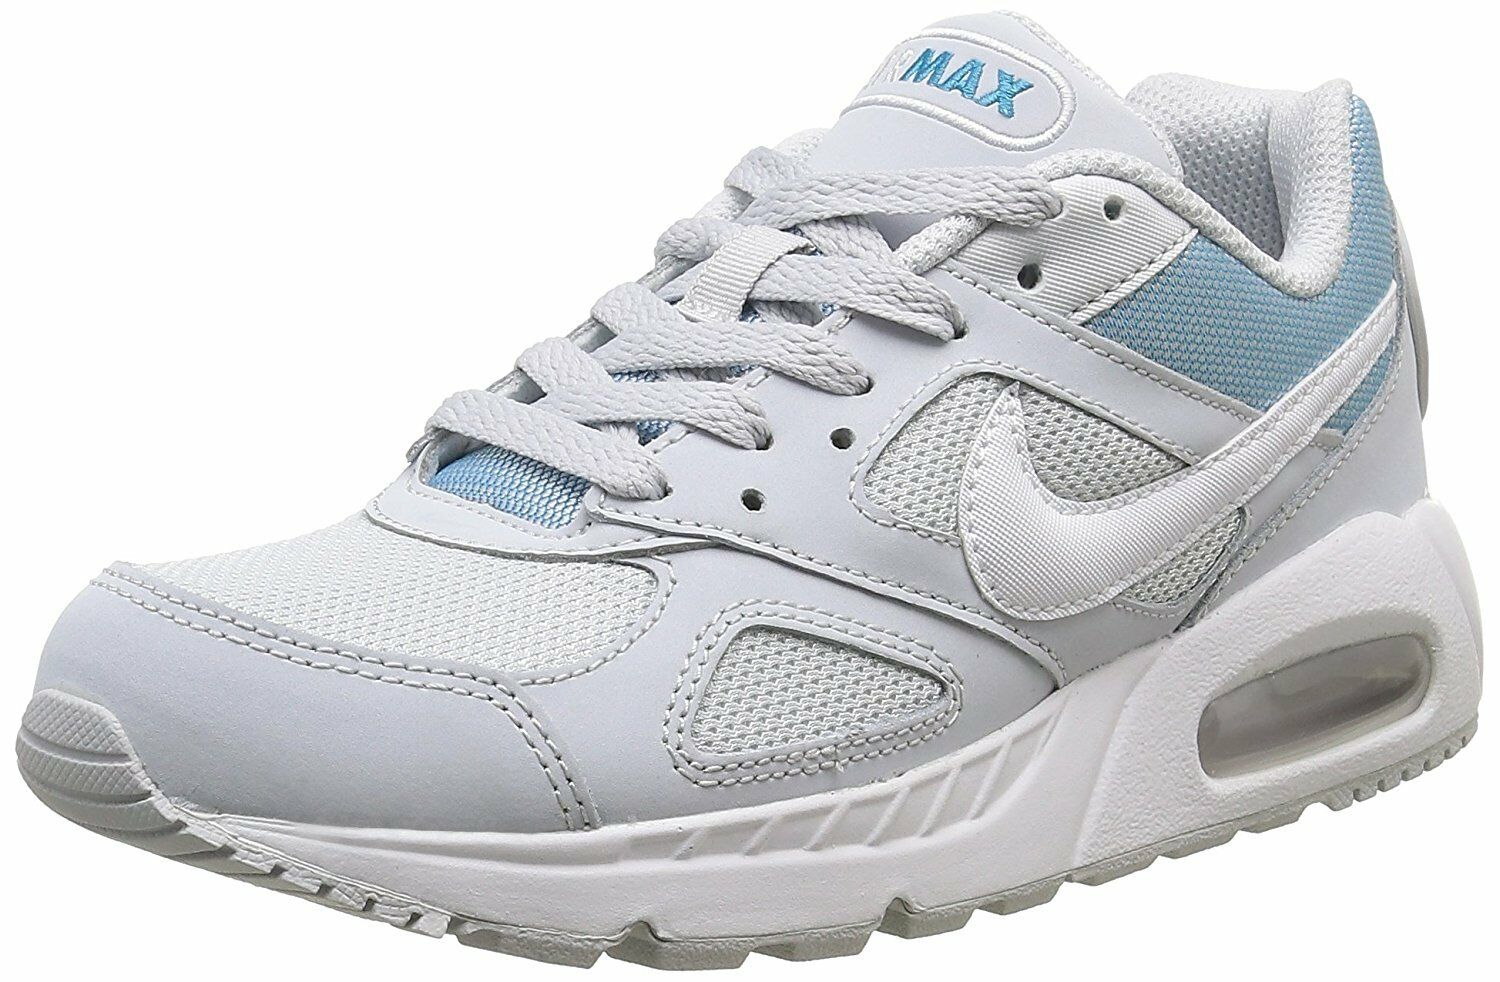 Womens Nike Air Max IVO Fashion Running Gym Casual Gym Running Walking Sneakers 5 8 fea04d